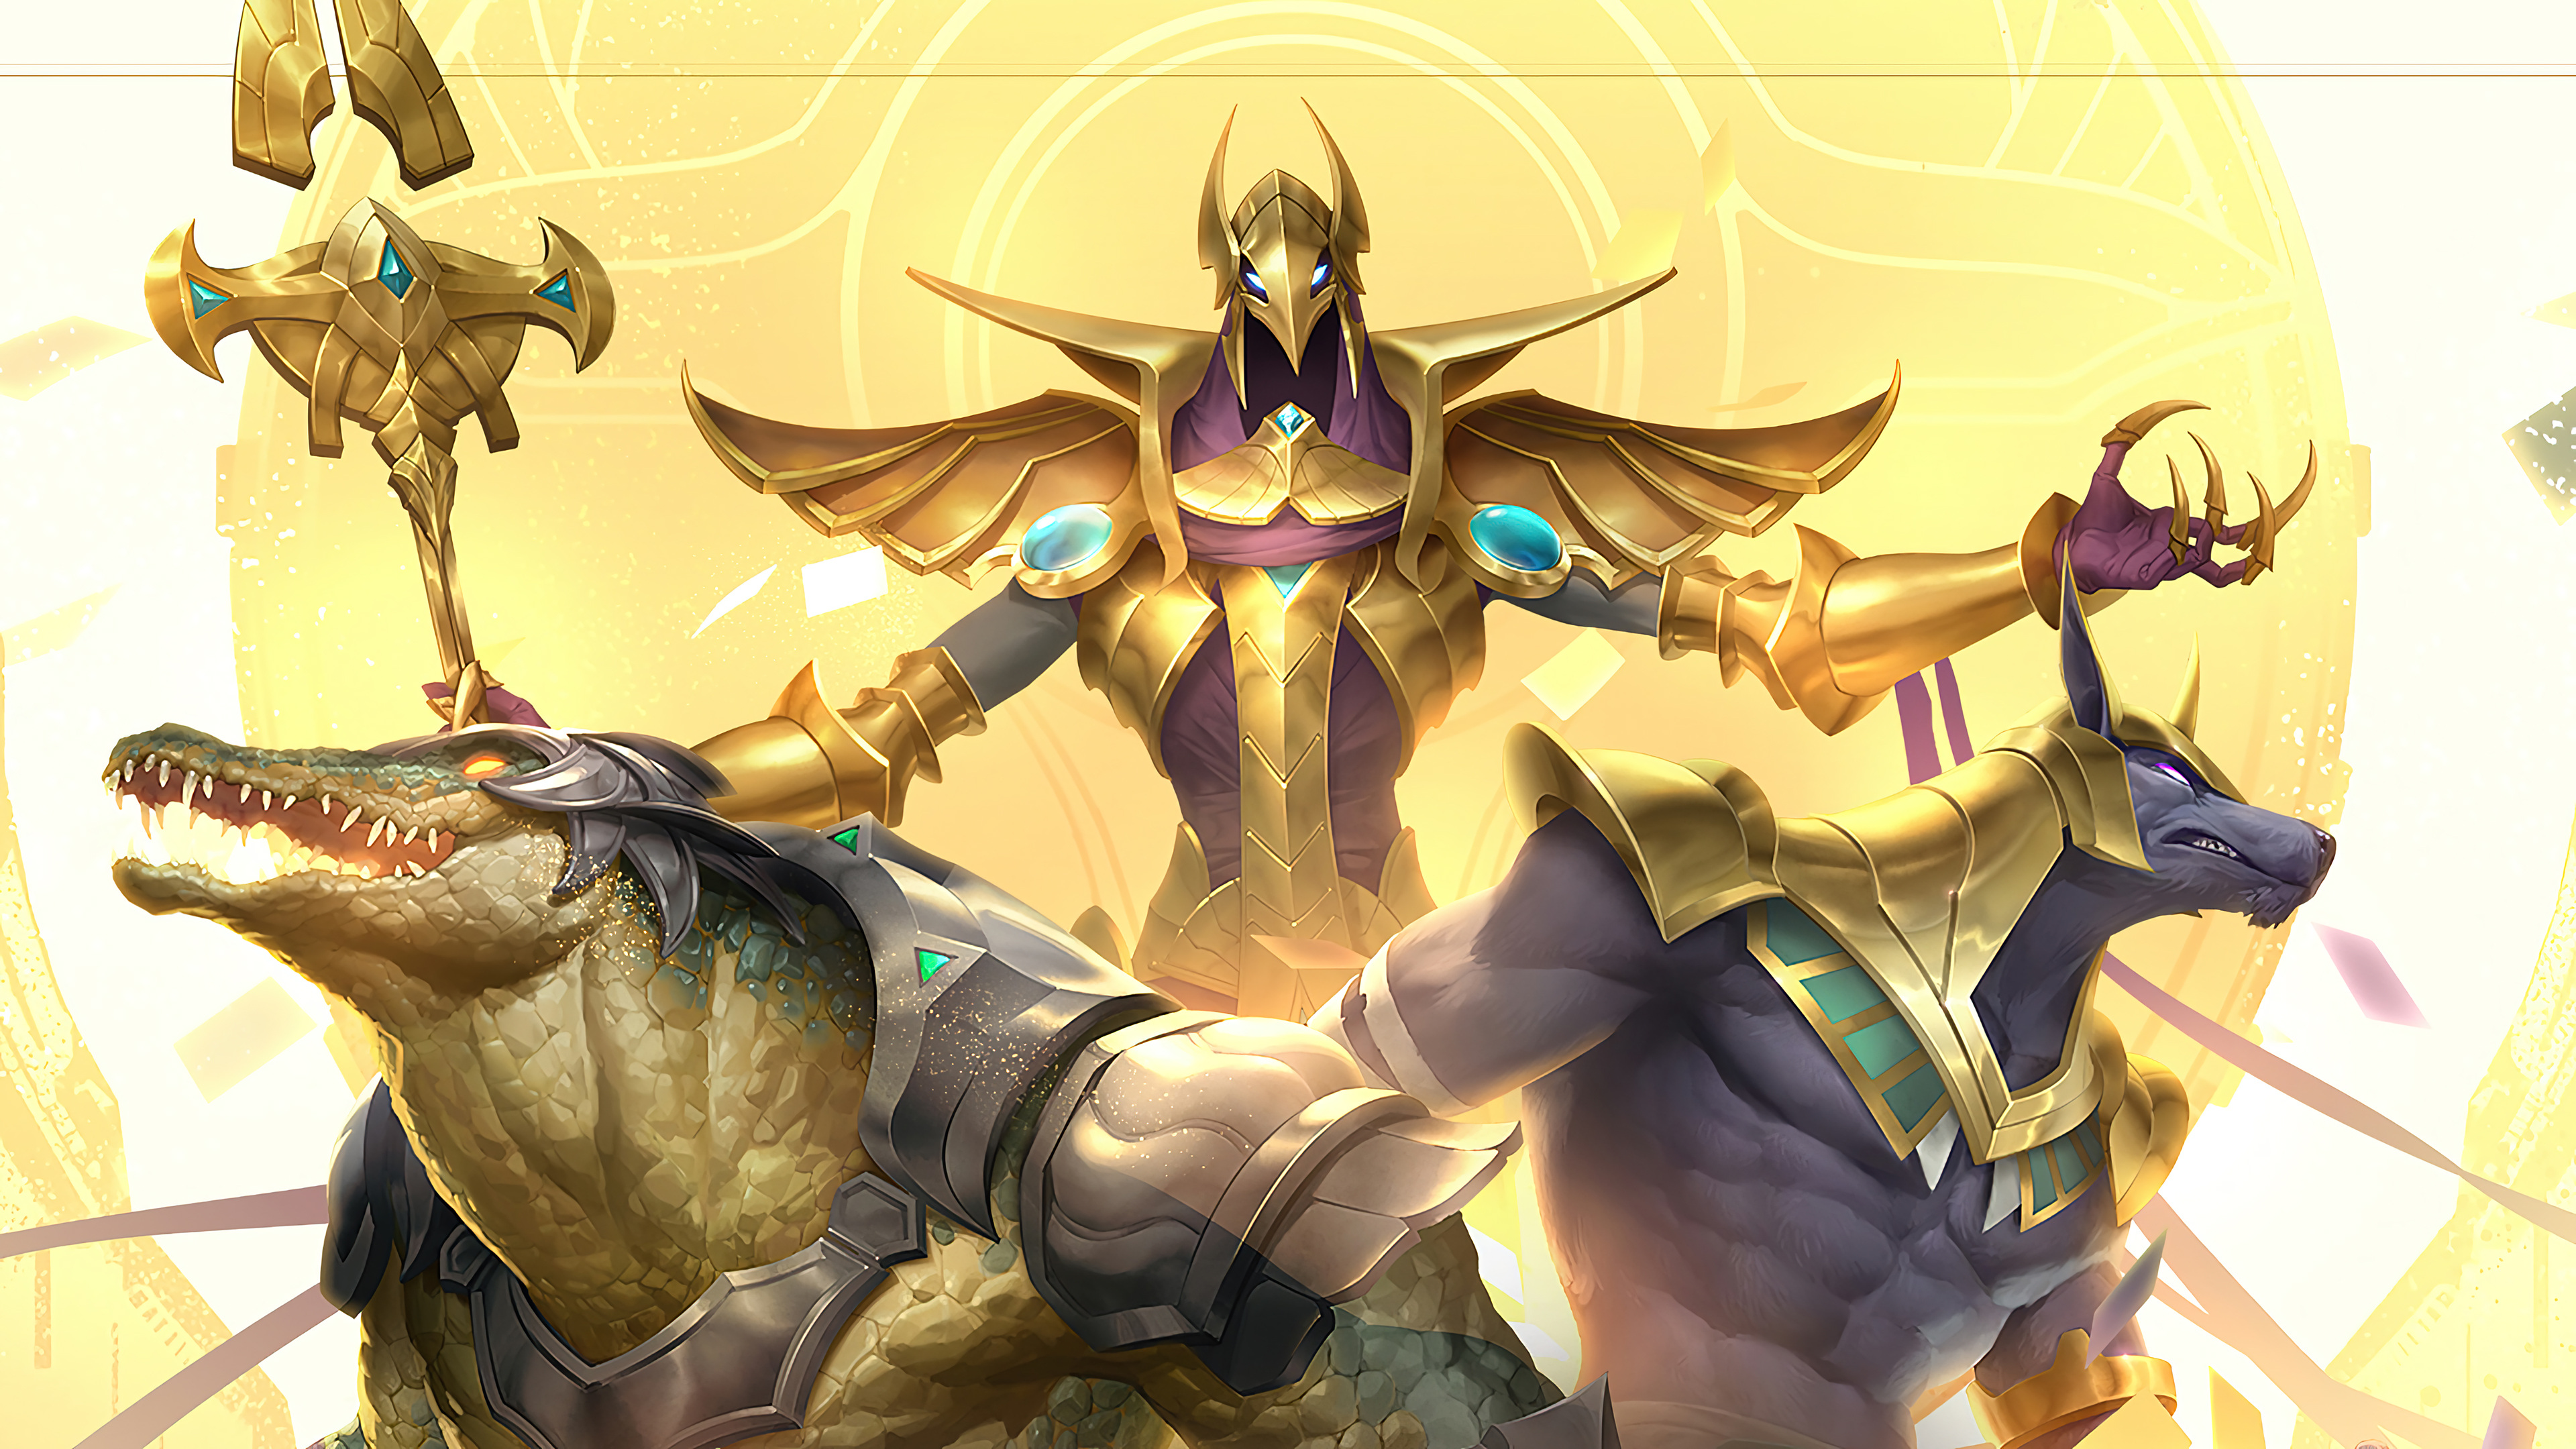 Fondos de pantalla Azir Renekton Nasus Legends of Runeterra